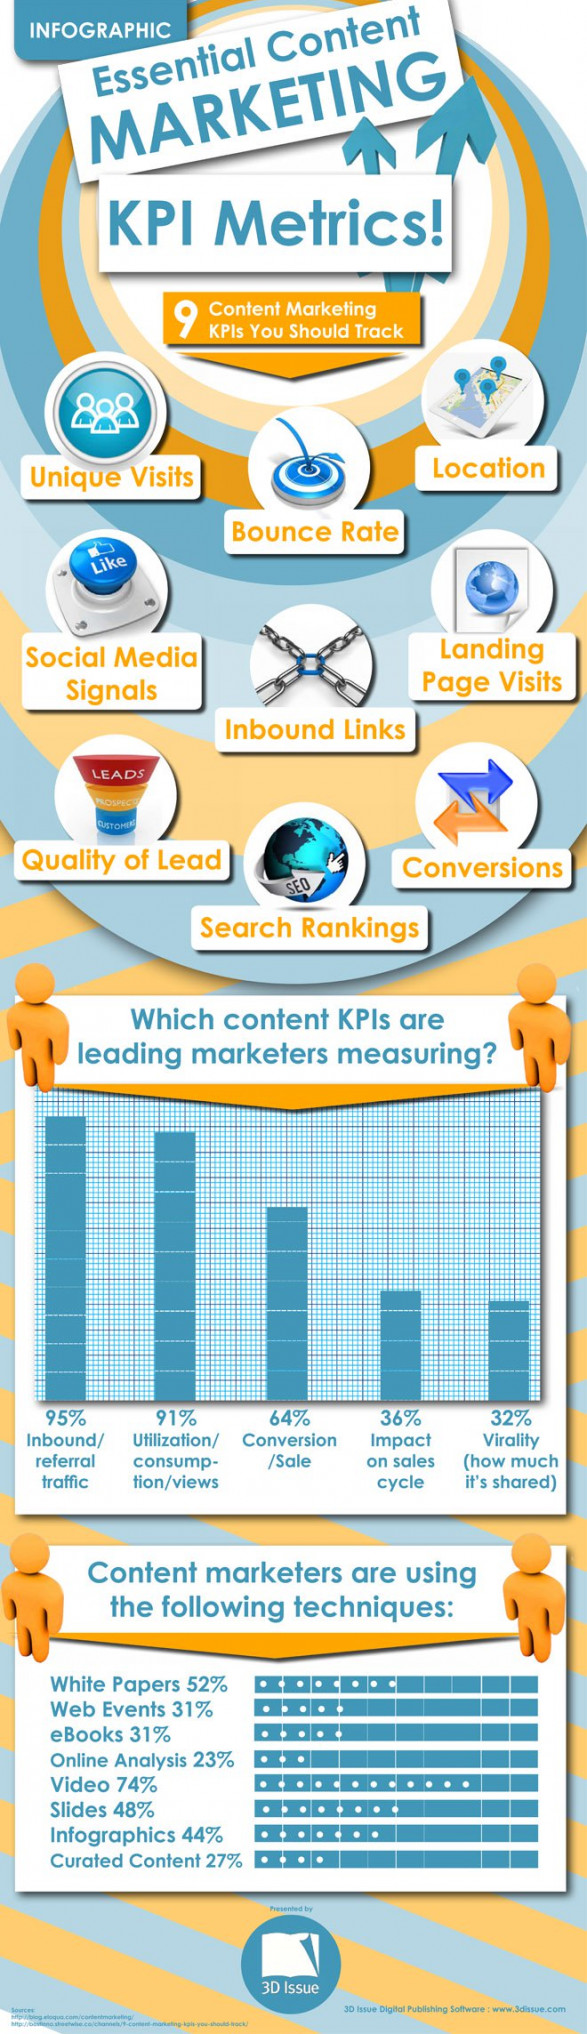 Essential Content Marketing KPI Metrics